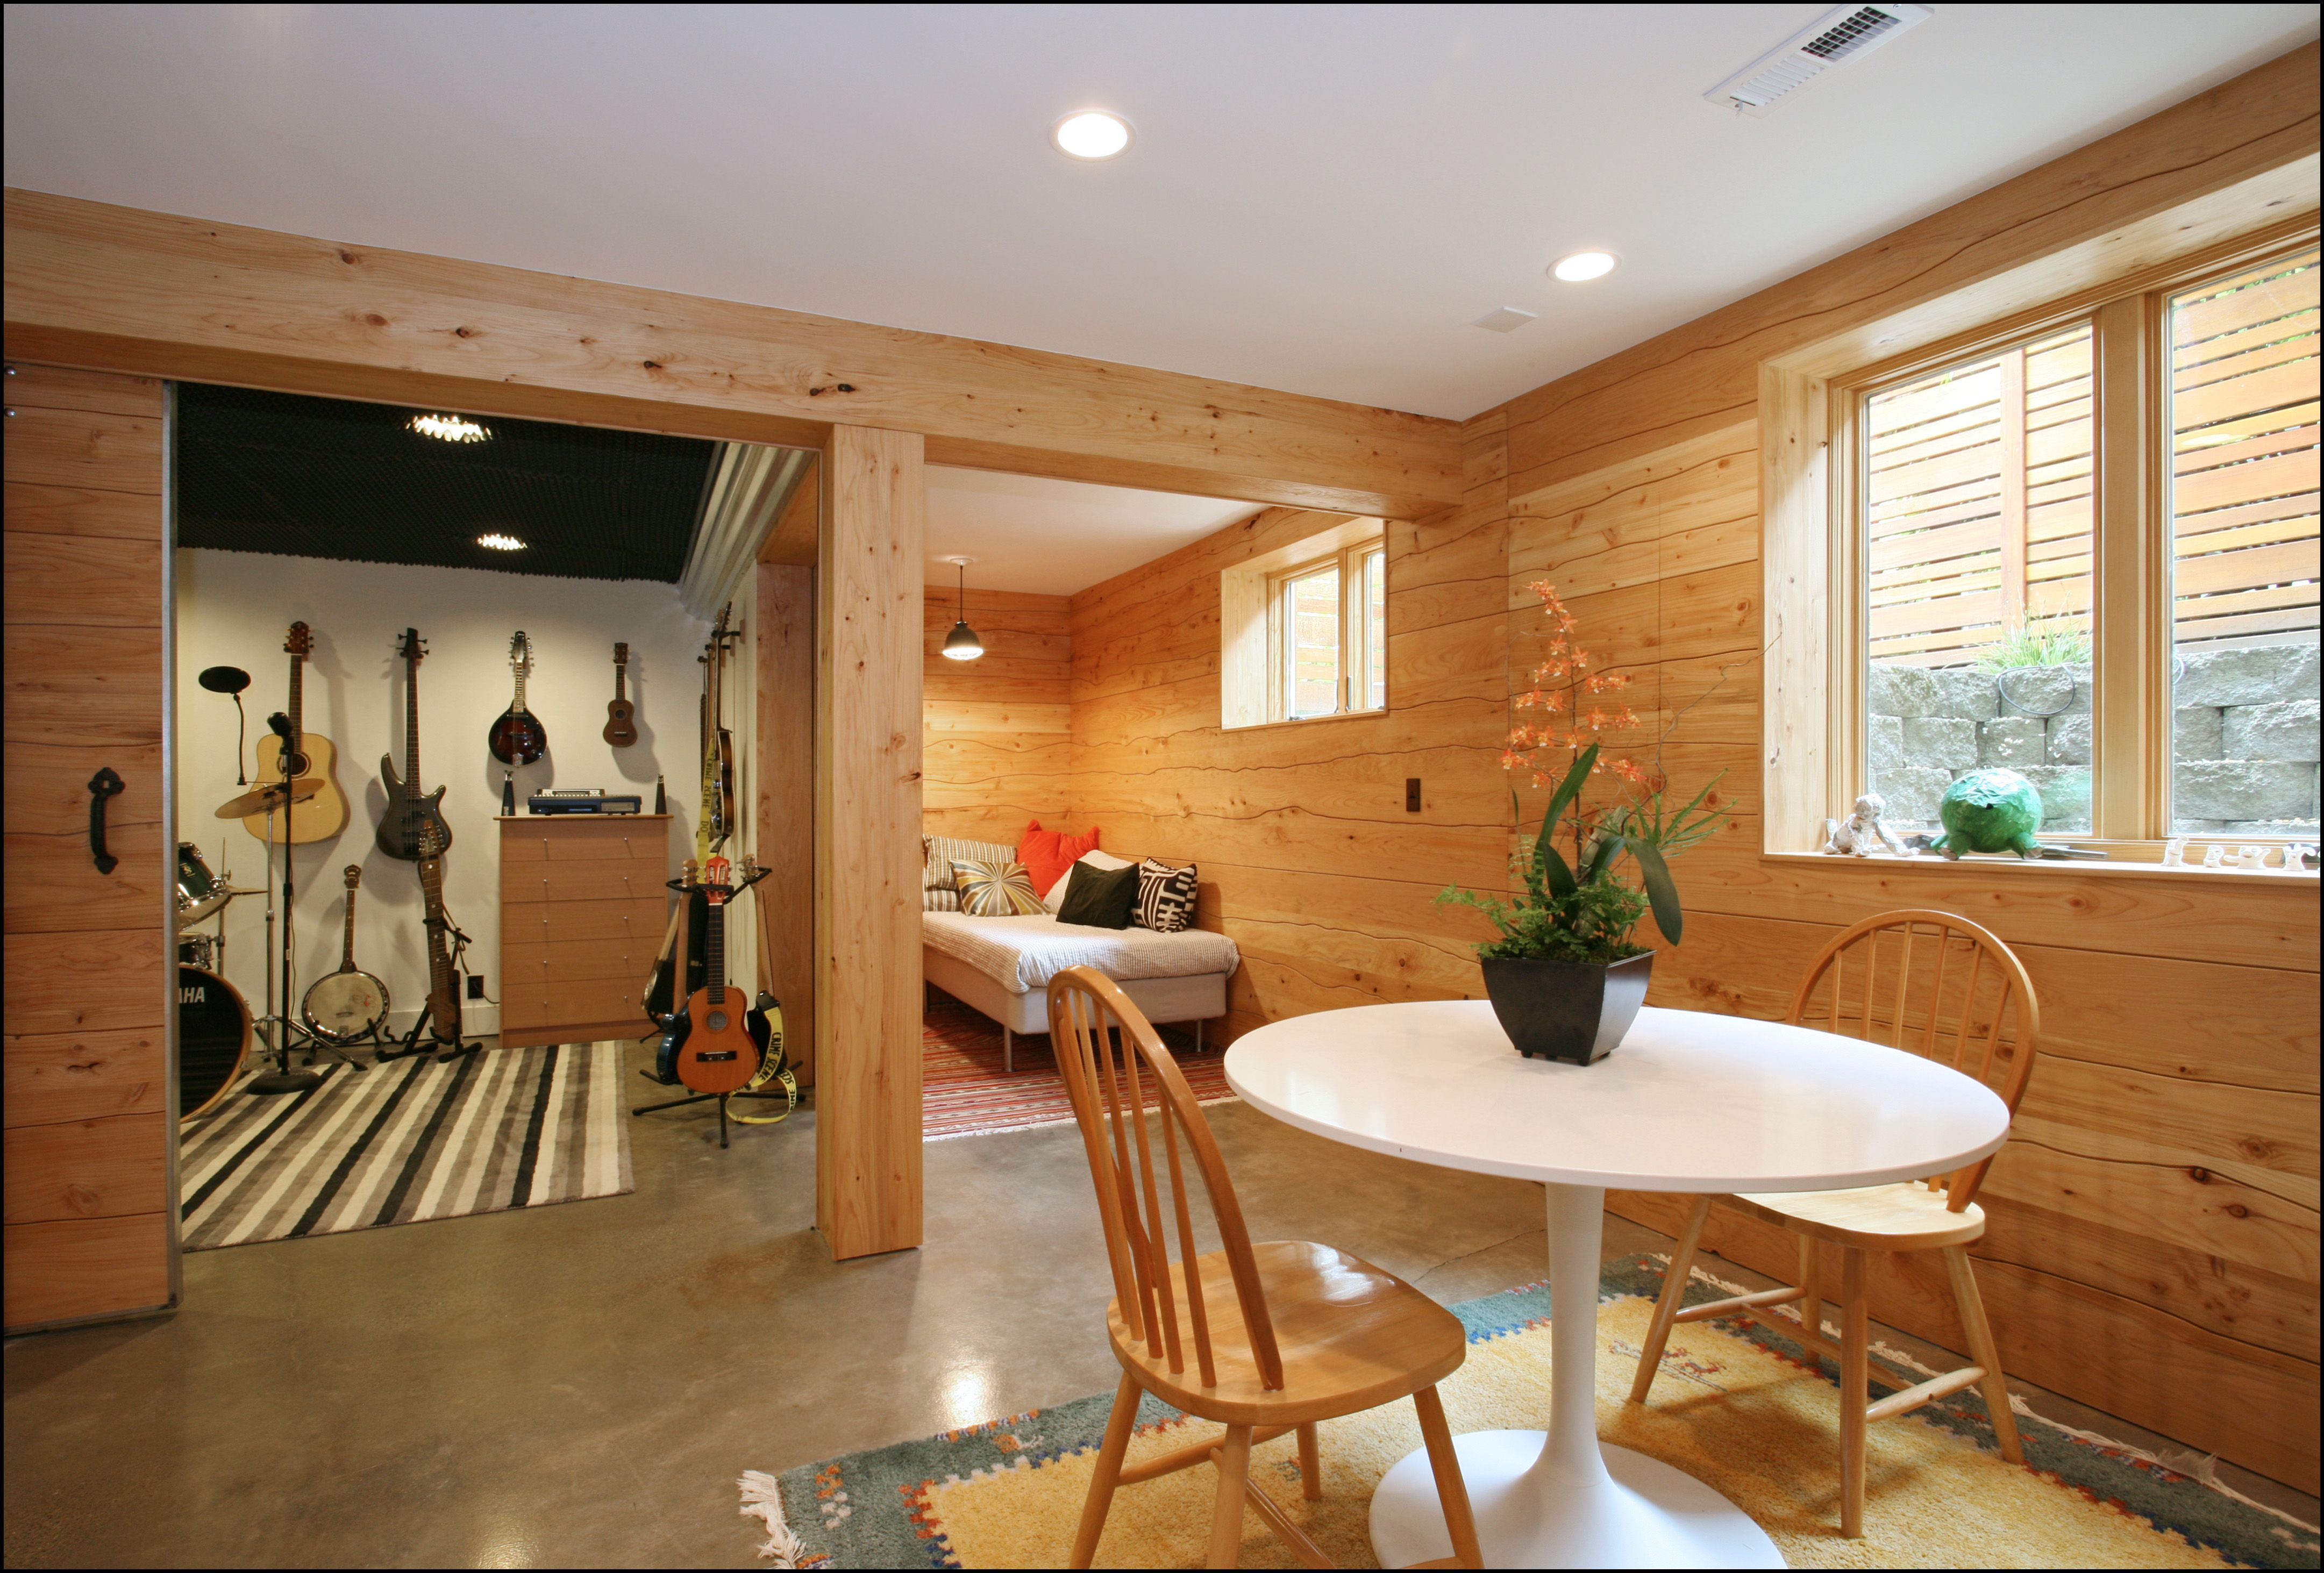 Unfinished Wood Wall Unfinished Basement Wall Ideas Unfinished Oak Wood